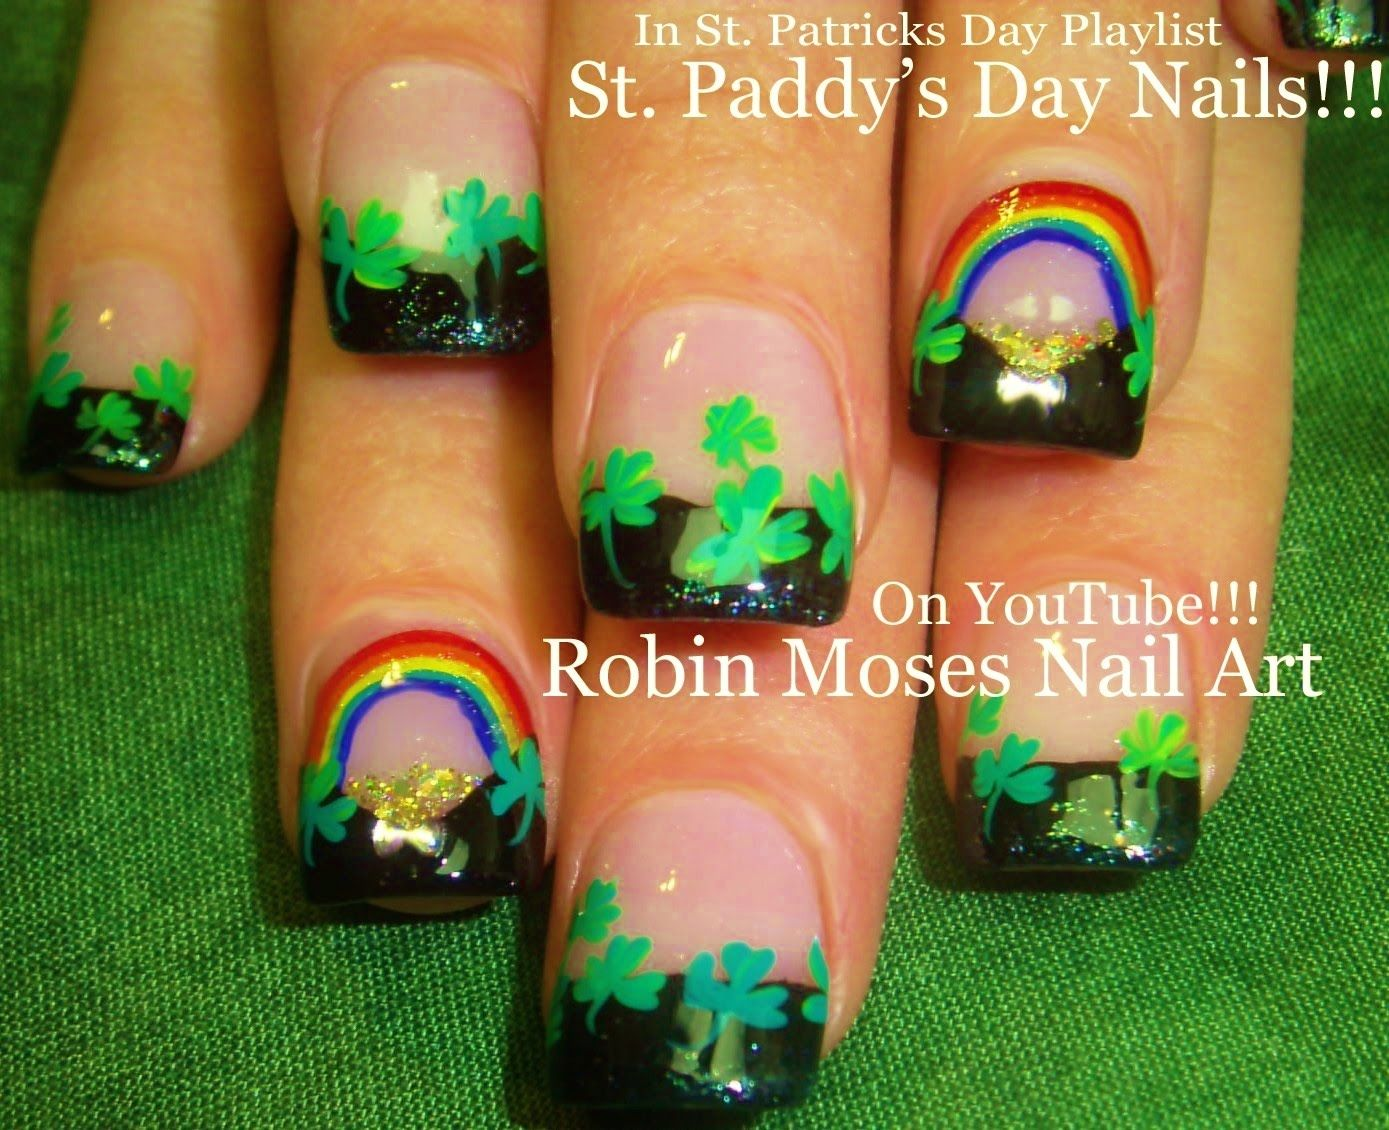 Nail Art Ideas shamrock nail art tutorial : Nail Art Tutorial | St. Patricks Day Nails | Rainbows and Shamrock ...